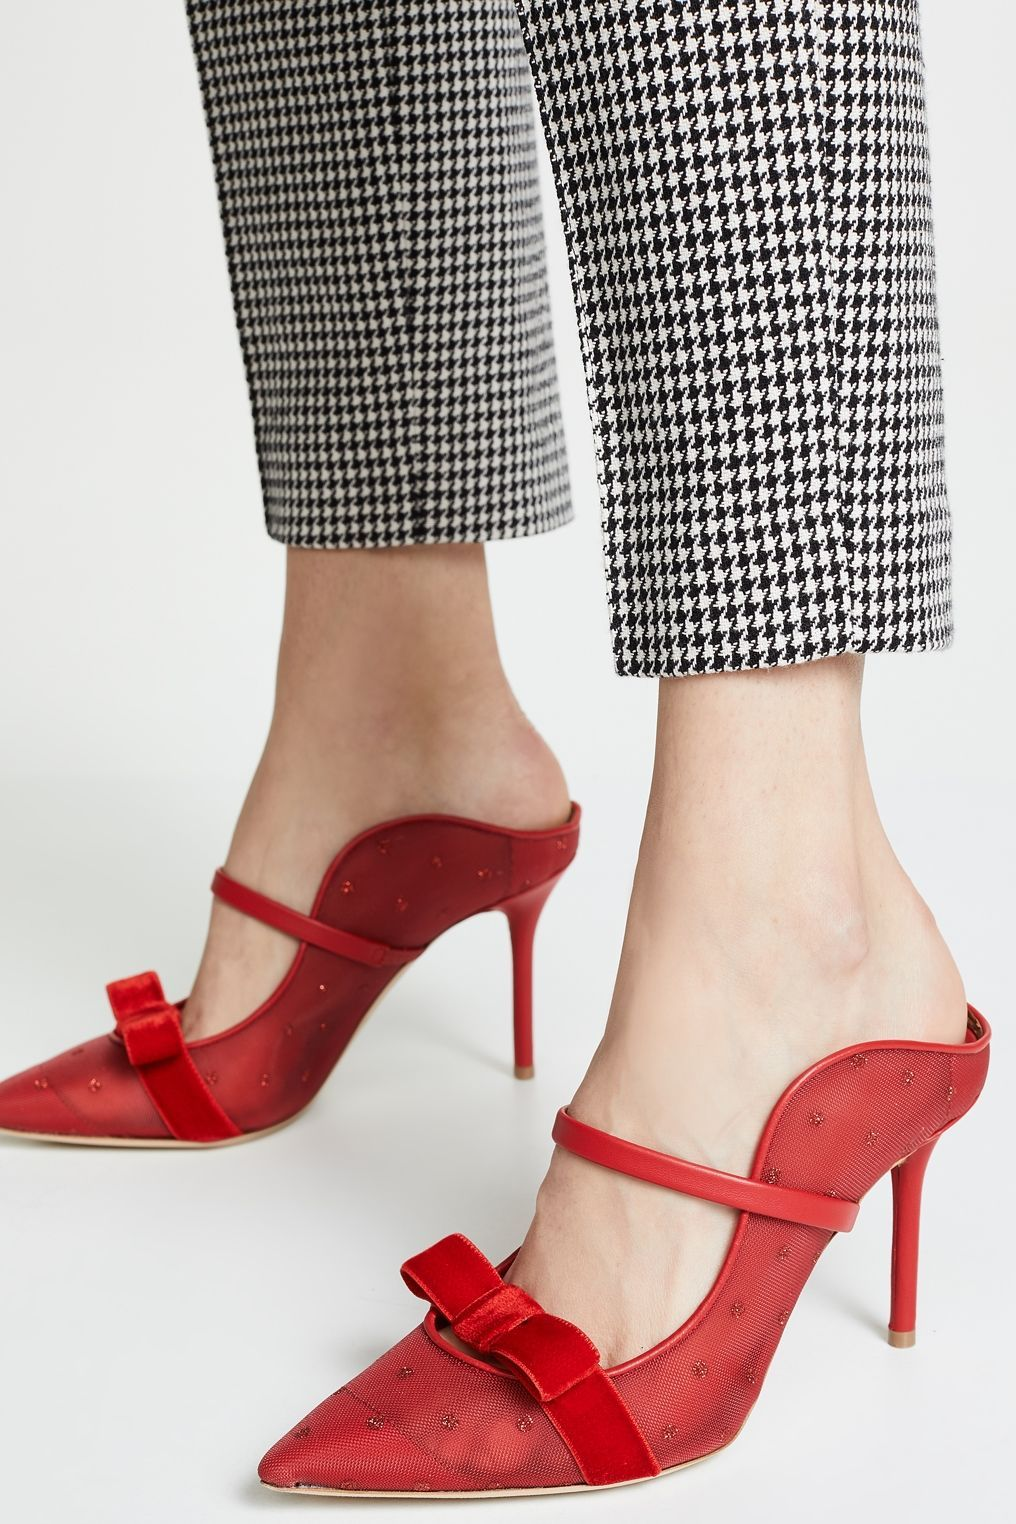 a3be4c9fc6 Would you wear these pumps featuring glittery polka dots